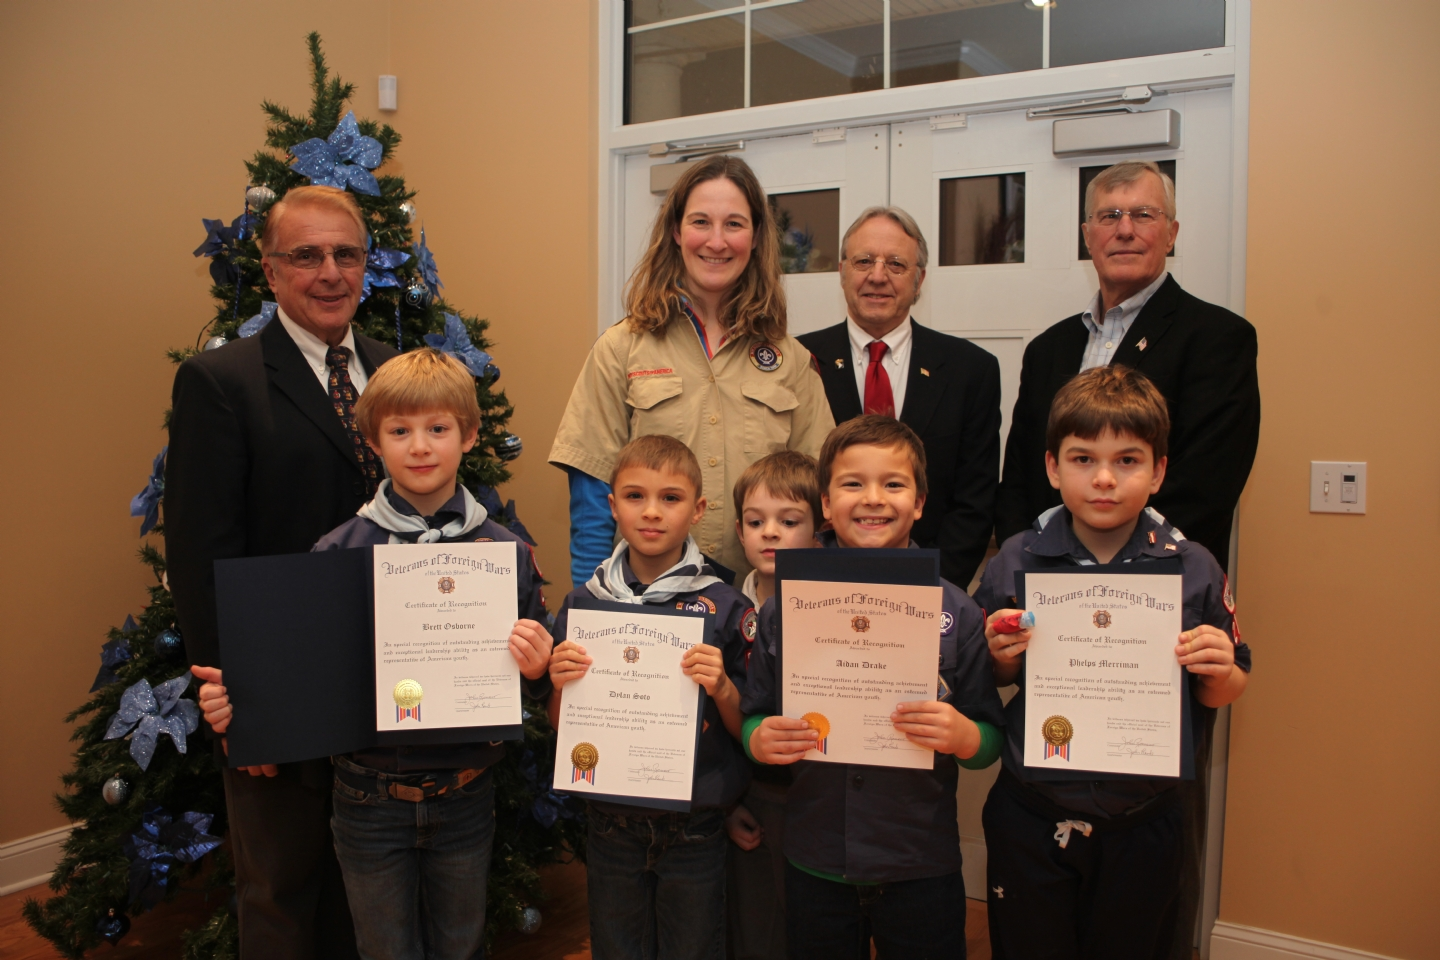 At the December holiday dinner of Metacomet VFW Post 1926 in Simsbury, five certificates of recognition were distributed to members of the Simsbury Cub Scout Den 11 of Boy Scout Pack 276 for their outstanding contribution of $486 to the Post's 'Adopt a Vet' program.  The Cub Scouts raised the donation by selling Boy Scout popcorn. The Post's 'Adopt A Vet' program has been in place for just over one year with the long term objective to help individual veterans stand on their own in a sustaining lifestyle.  The program recently helped a disabled veteran financially while appealing his disability with the Veterans Administration and helped a homeless veteran get back on his feet.  The Cub Scouts responsible for the donation, with their certificates, are (left to right): Brett Osborne, Dylan Soto, Aiden Drake, Phelps Merriman. Missing from the picture is Caleb Deems.  In the back row are (left to right): John Romano, Commander, VFW Post 1926; Suzanne Osborne, Den Leader with her son, Josh; John Lamb, Quartermaster of Post 1926; and John Fox, Senior Vice Commander of Post 1926.